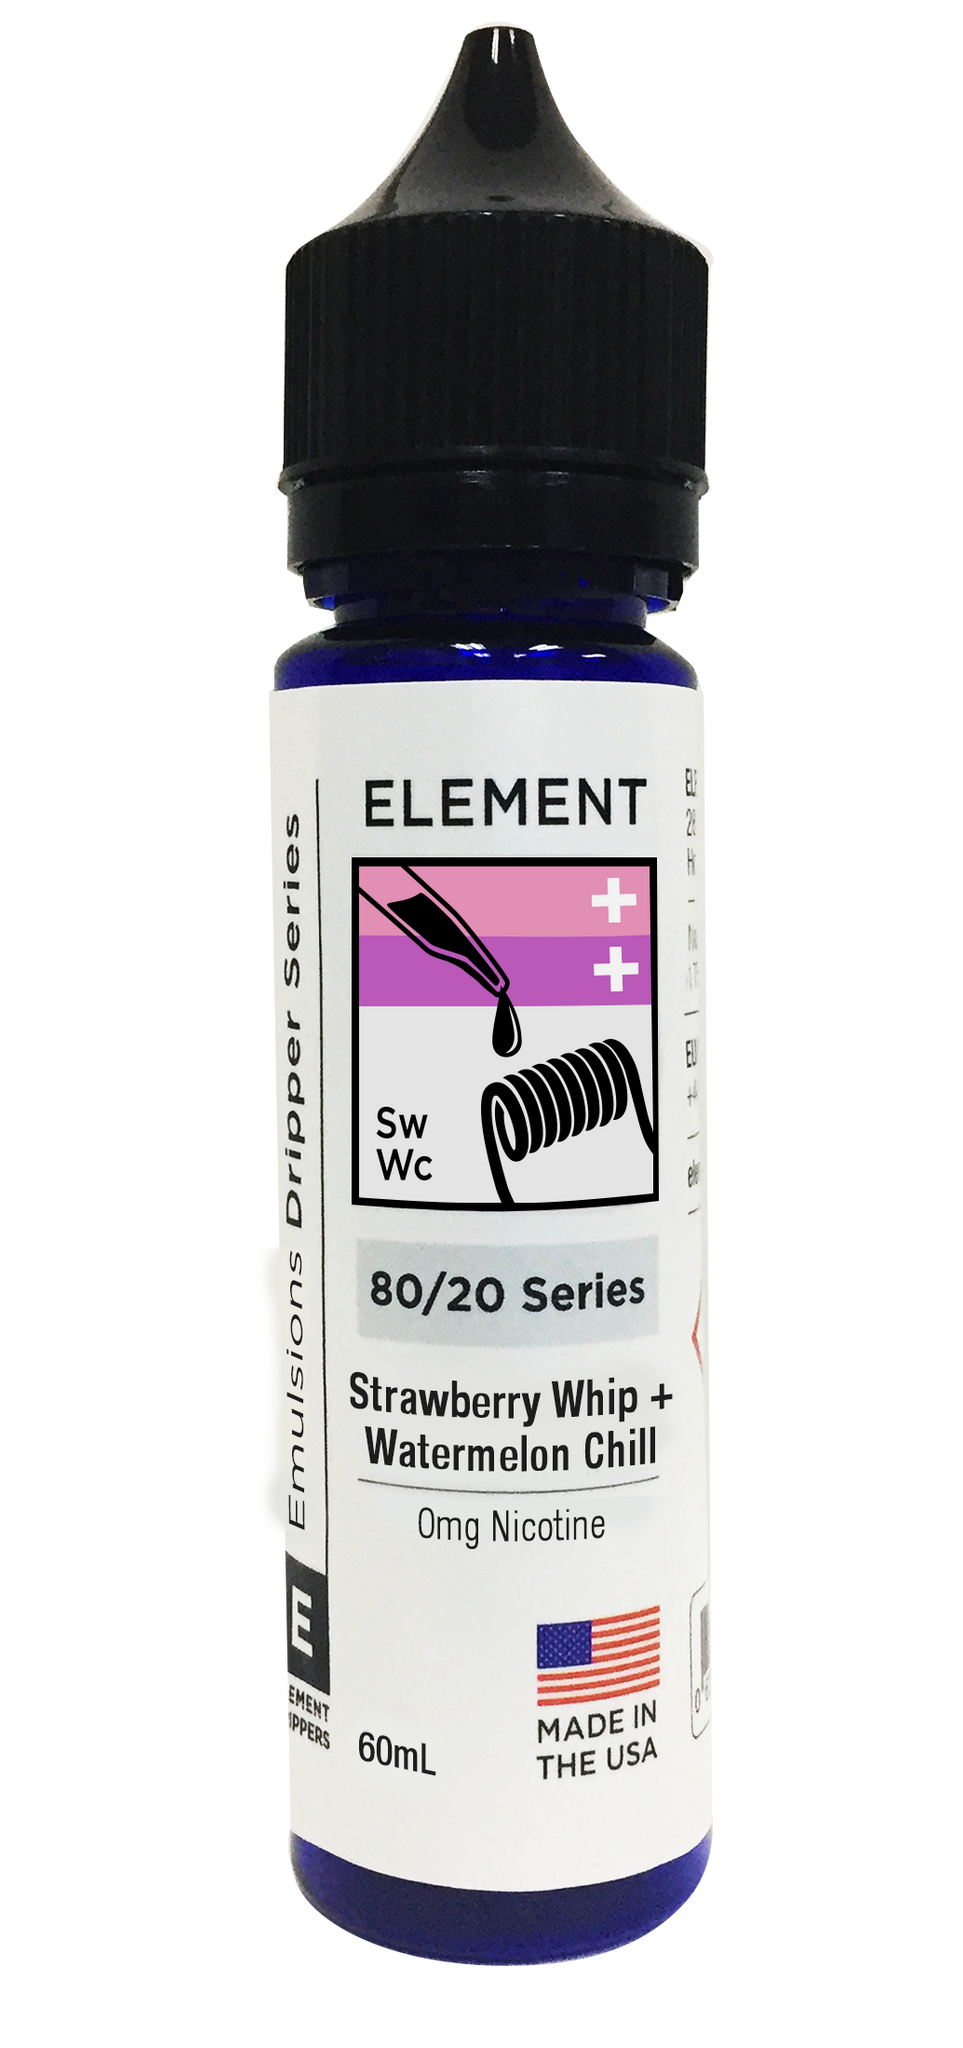 ELEMENT - STRAWBERRY WHIP + WATERMELON CHILL